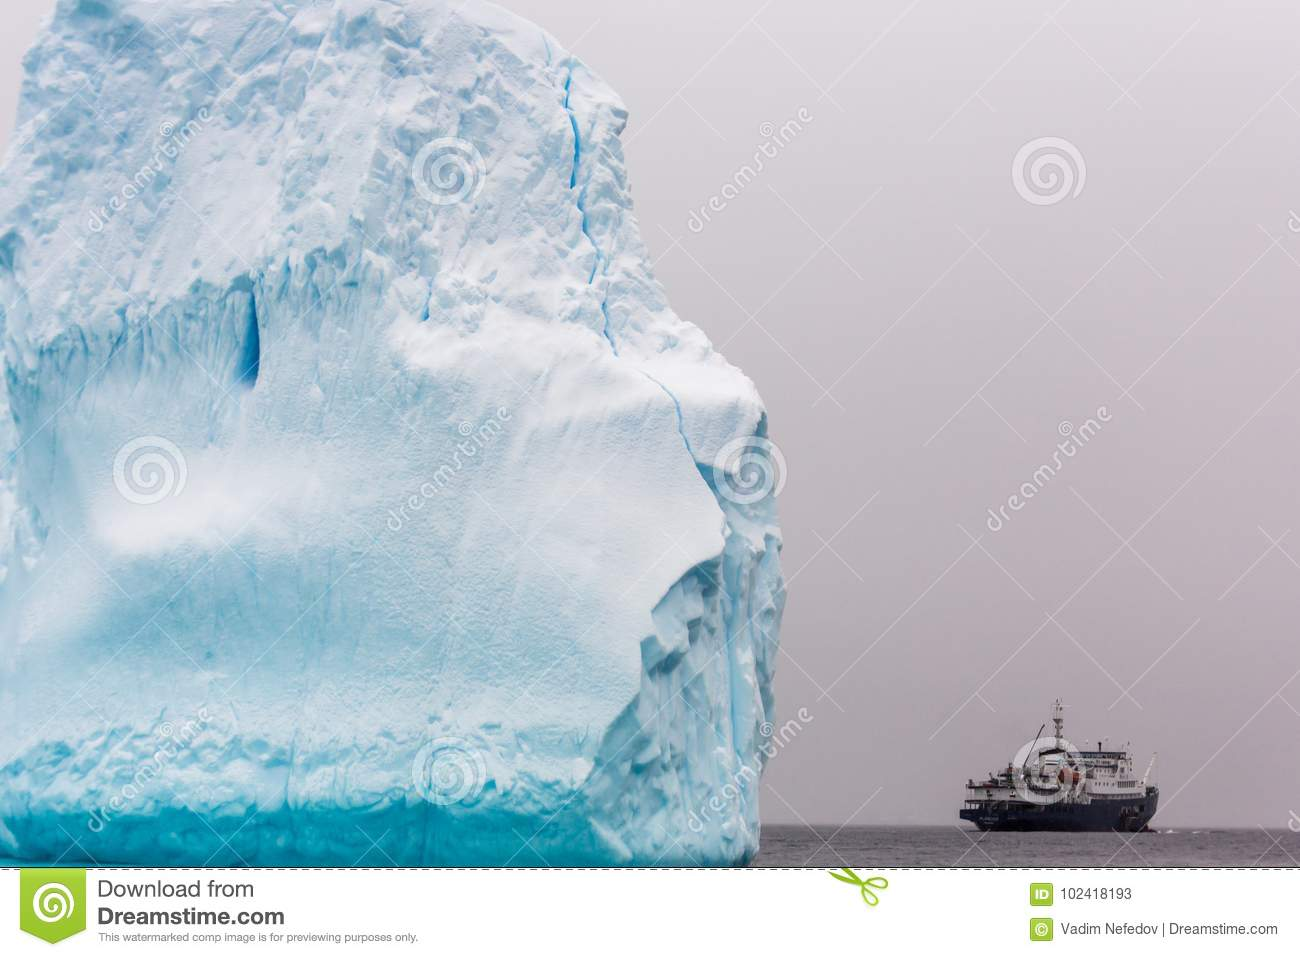 Huge piece of iceberg with antarctic cruise ship at the horizon, Antarctica